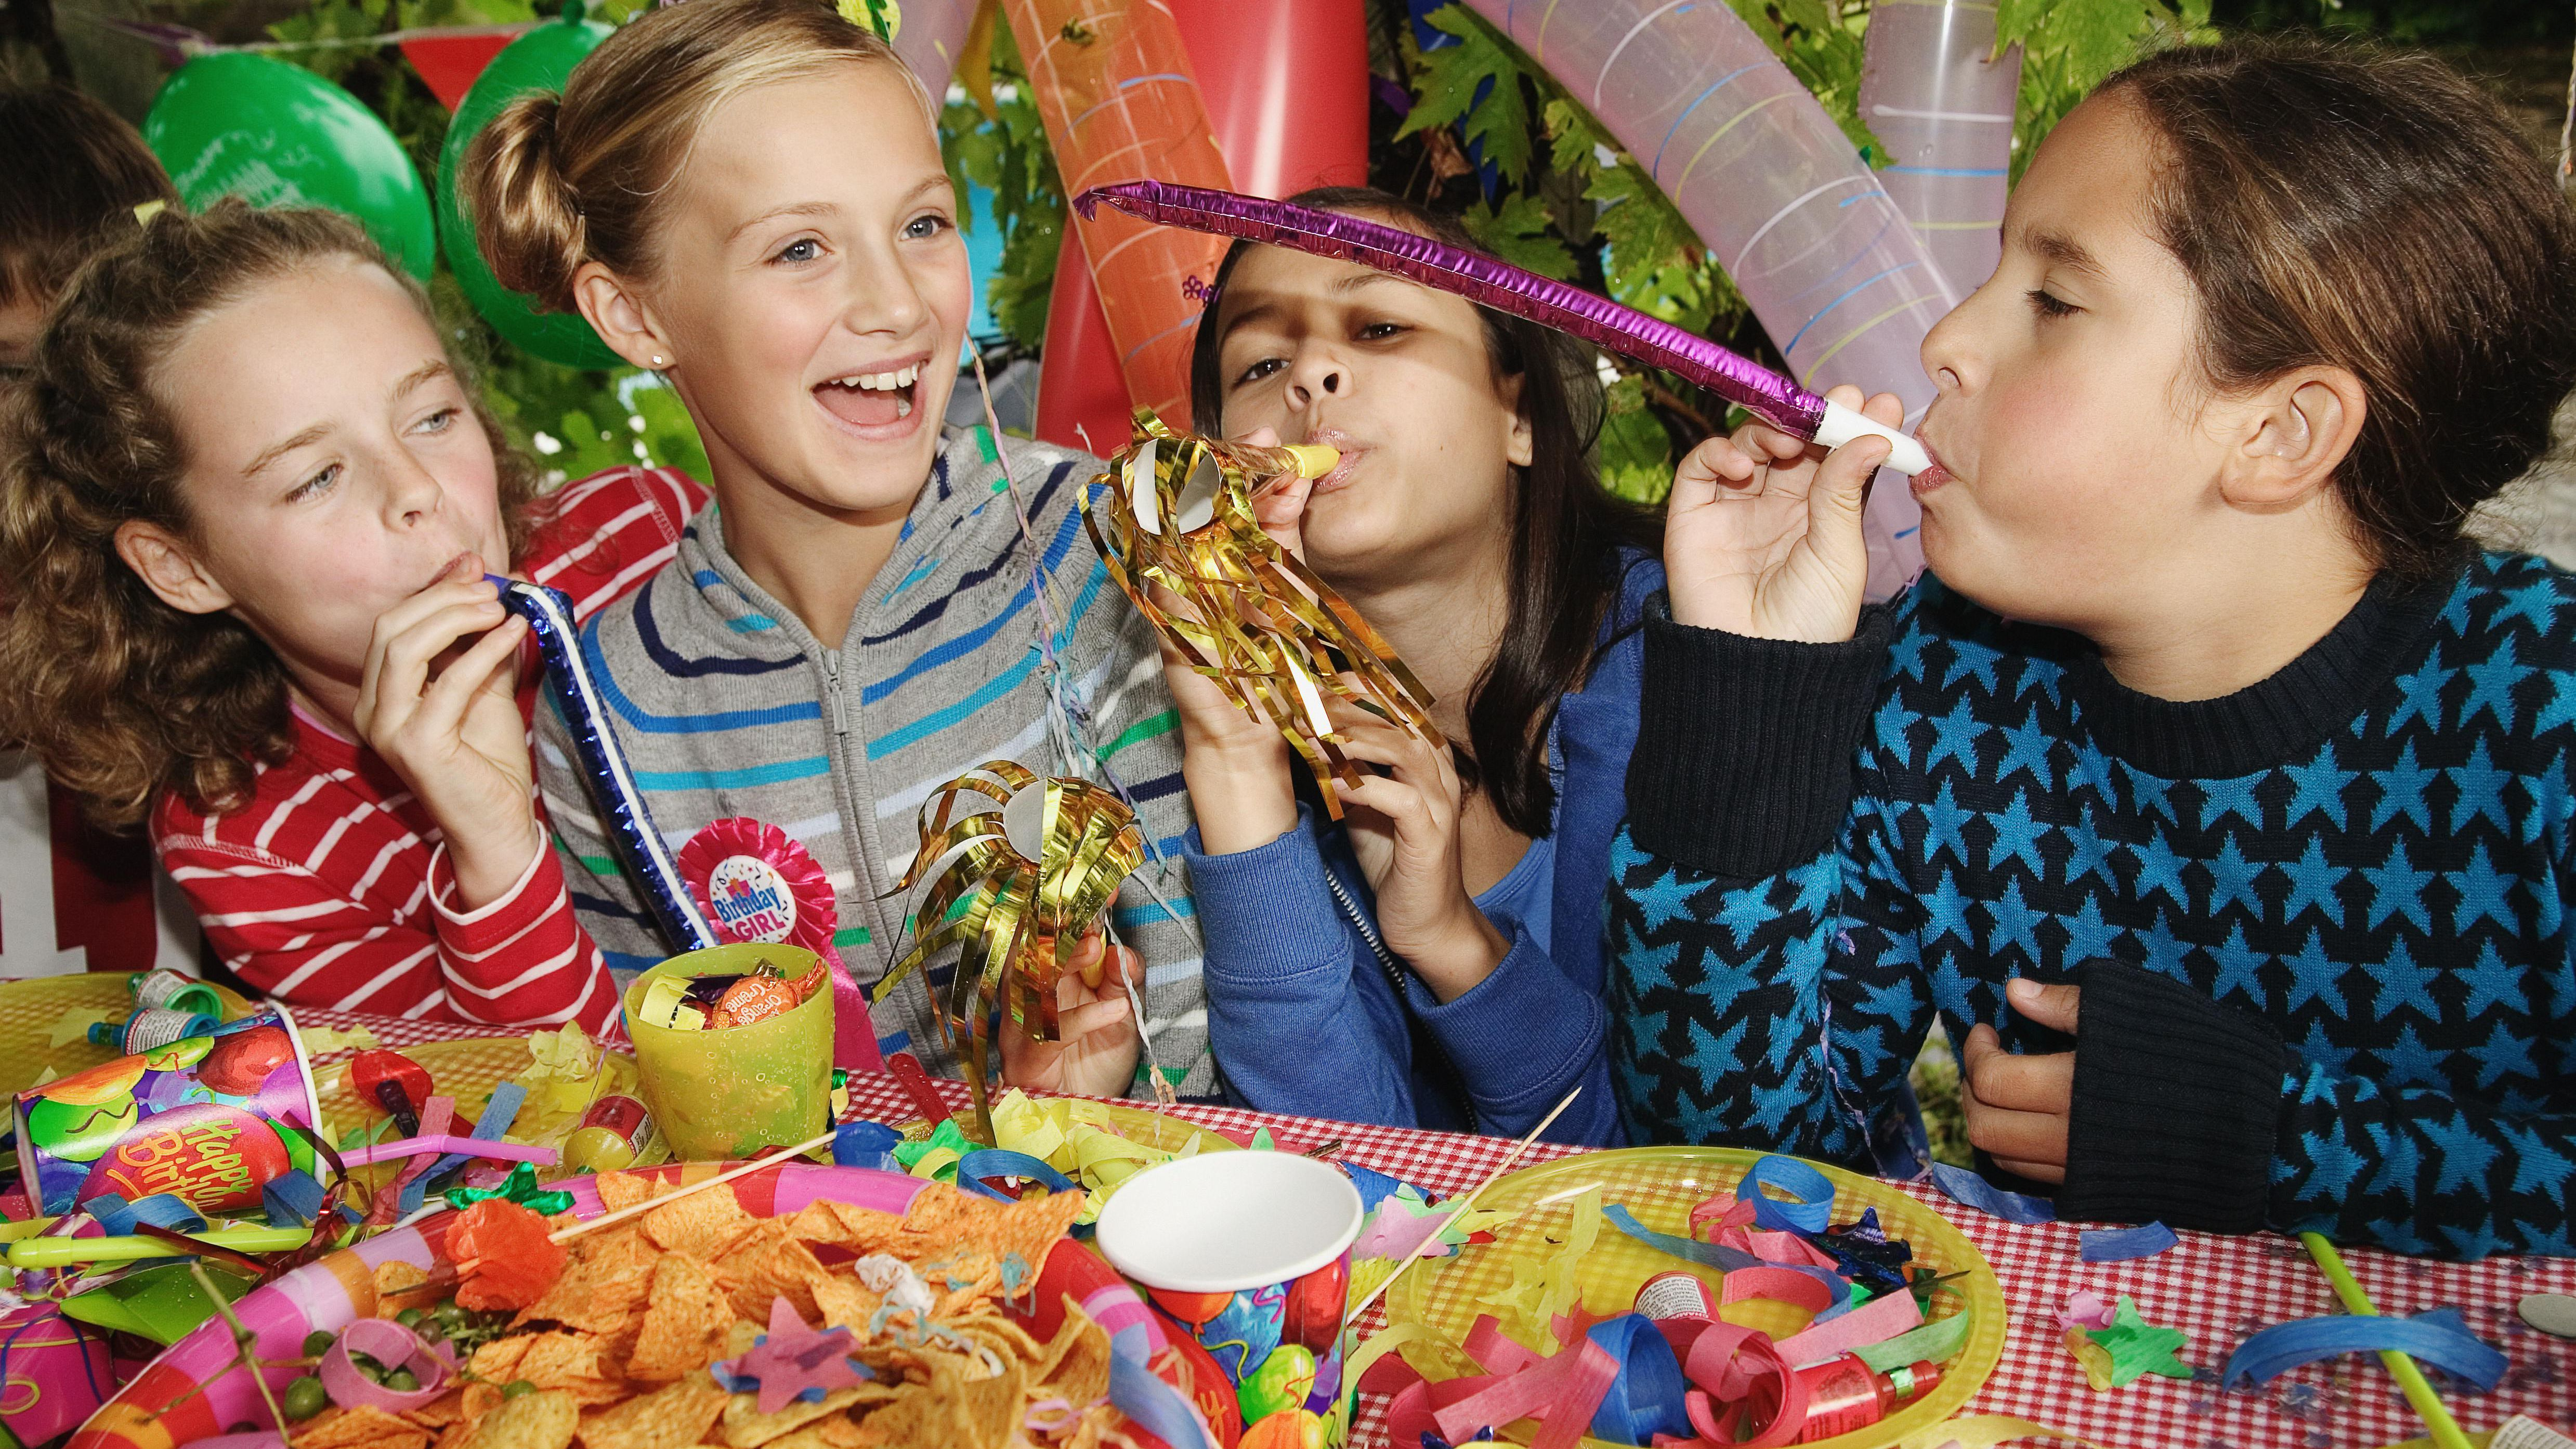 Preteen Party Favors And Goodie Bag Ideas For Tweens